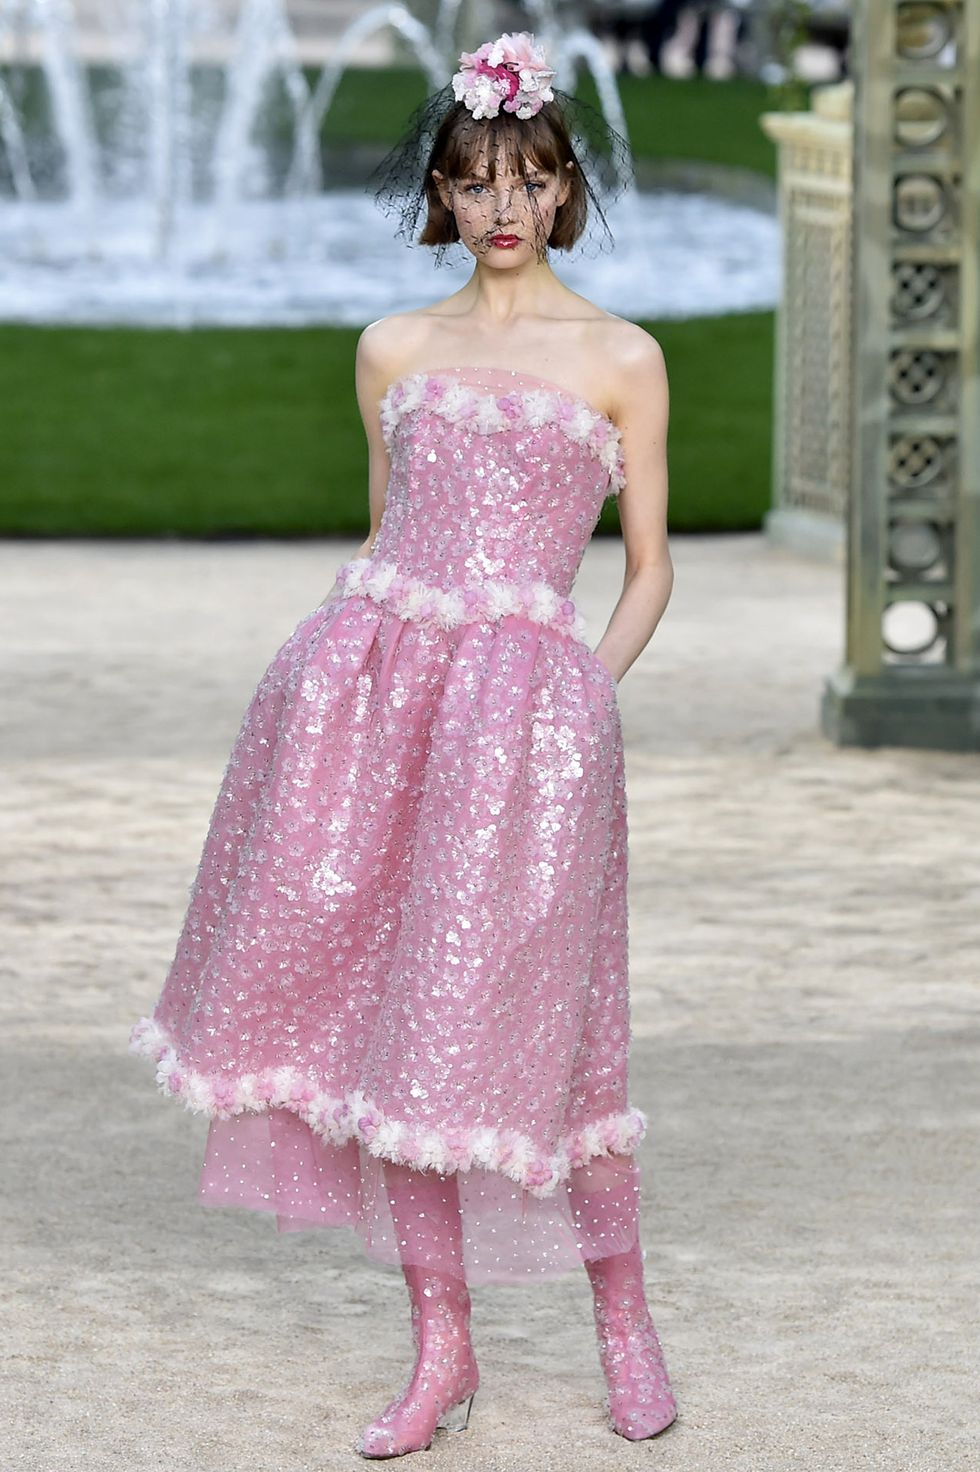 model-walks-the-runway-at-the-chanel-spring-summer-2018-news-photo-909352698-1550590607